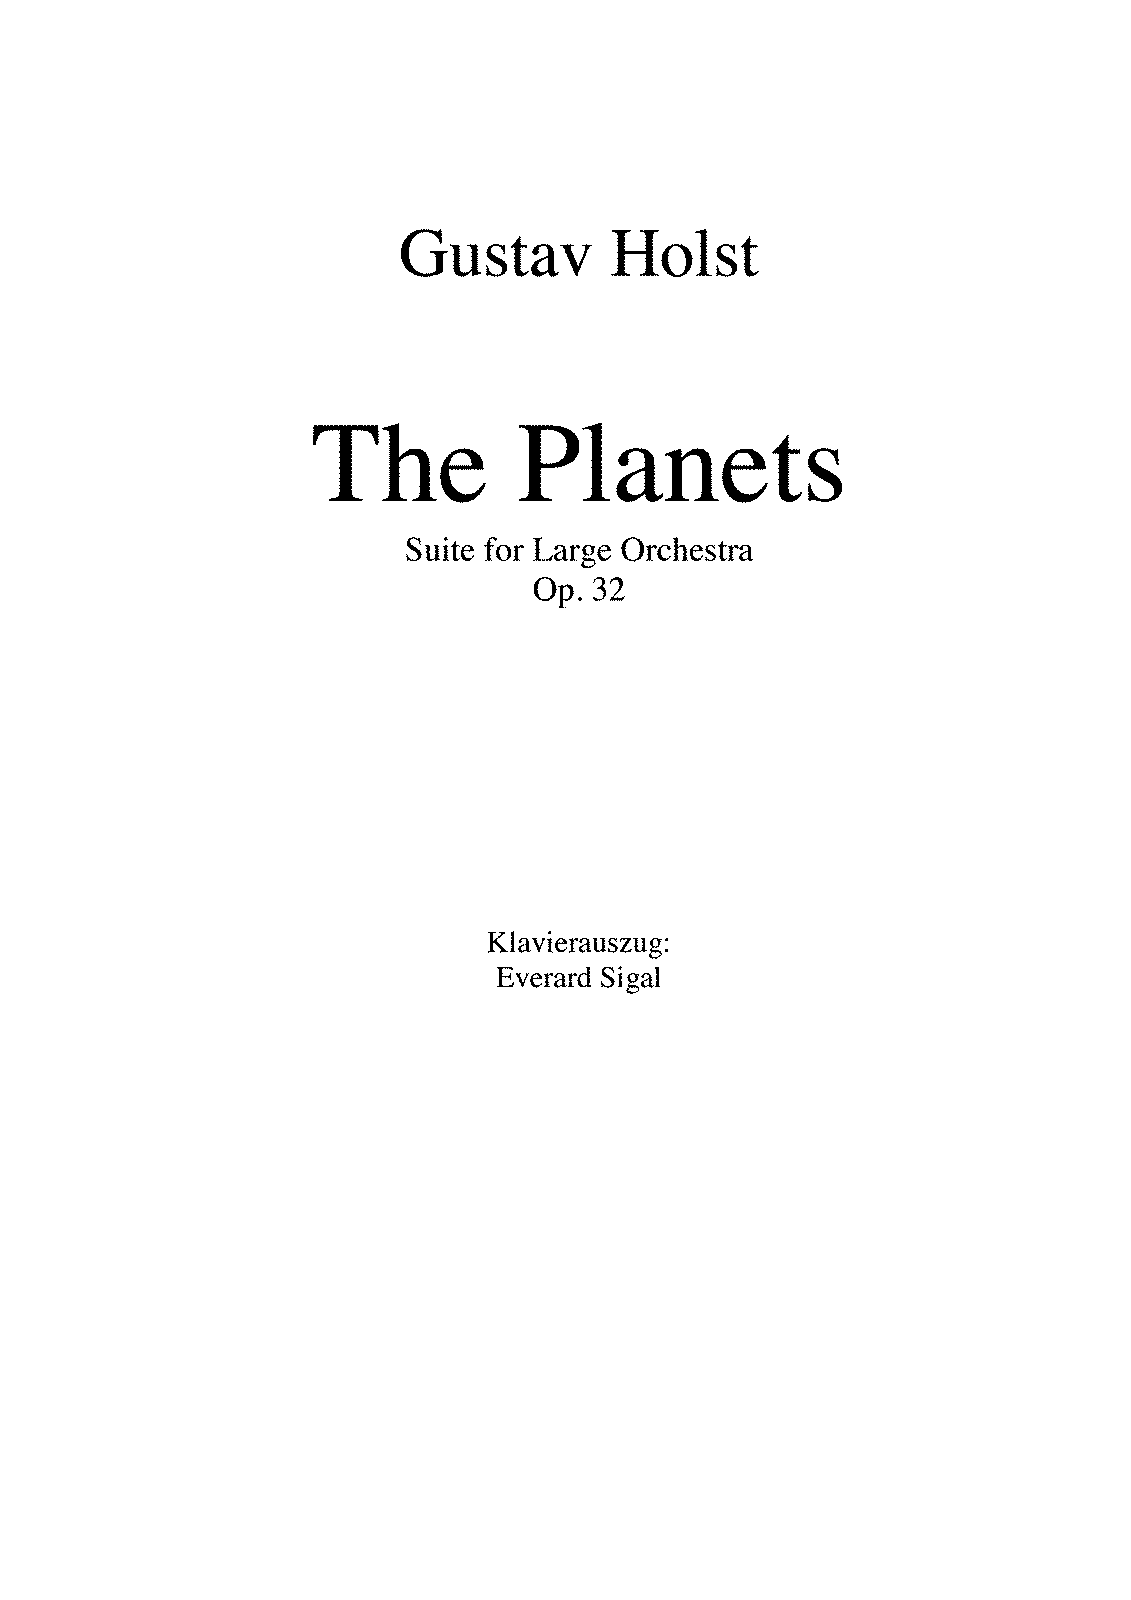 PMLP33488-Gustav Holst The Planets op32 Piano Solo.pdf